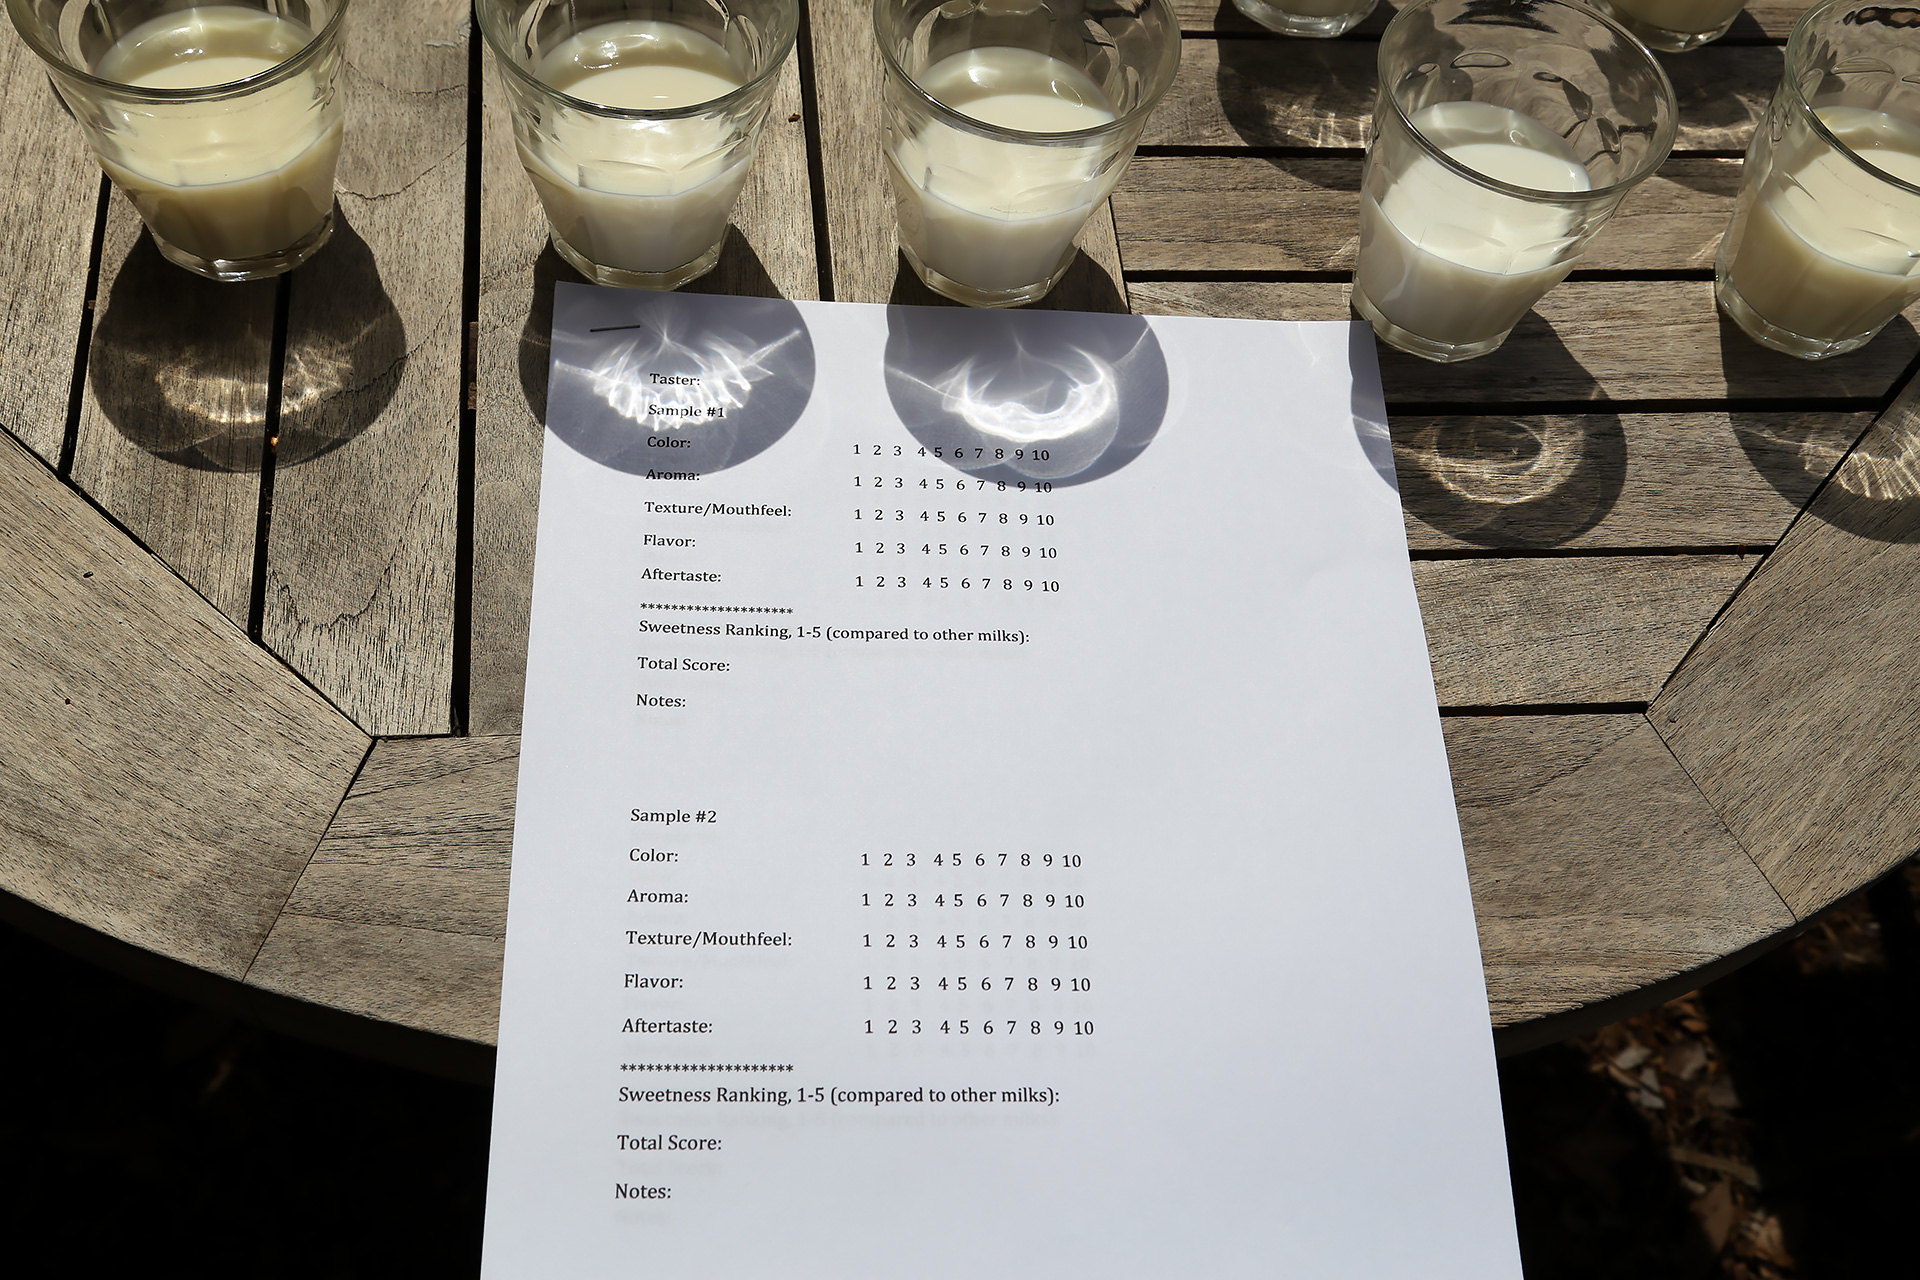 The milk rating system for the taste test